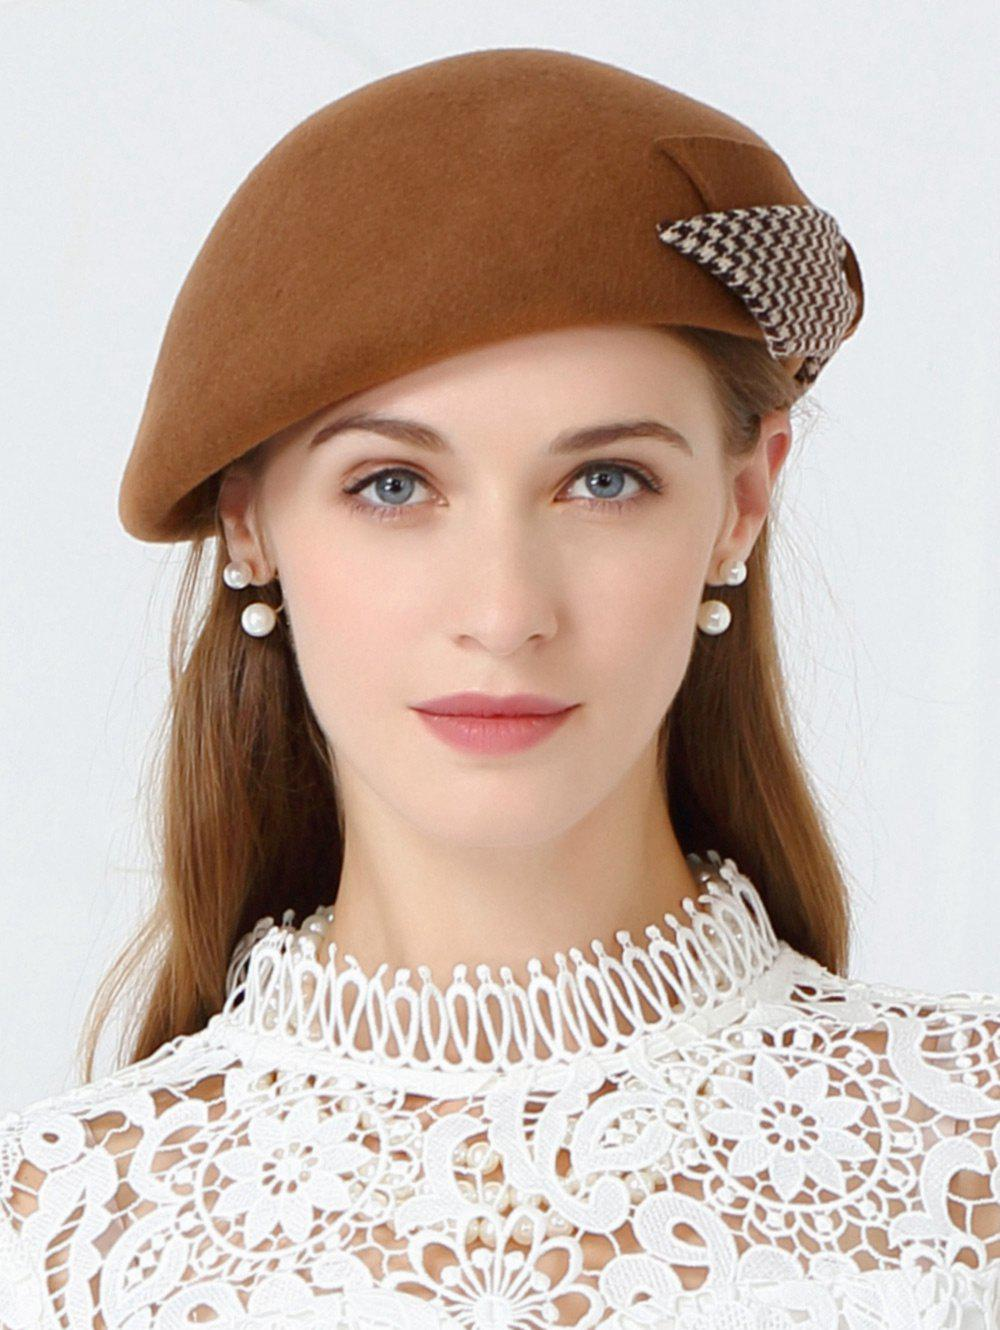 New Vintage Bowknot Embellished Formal Pillbox Hat